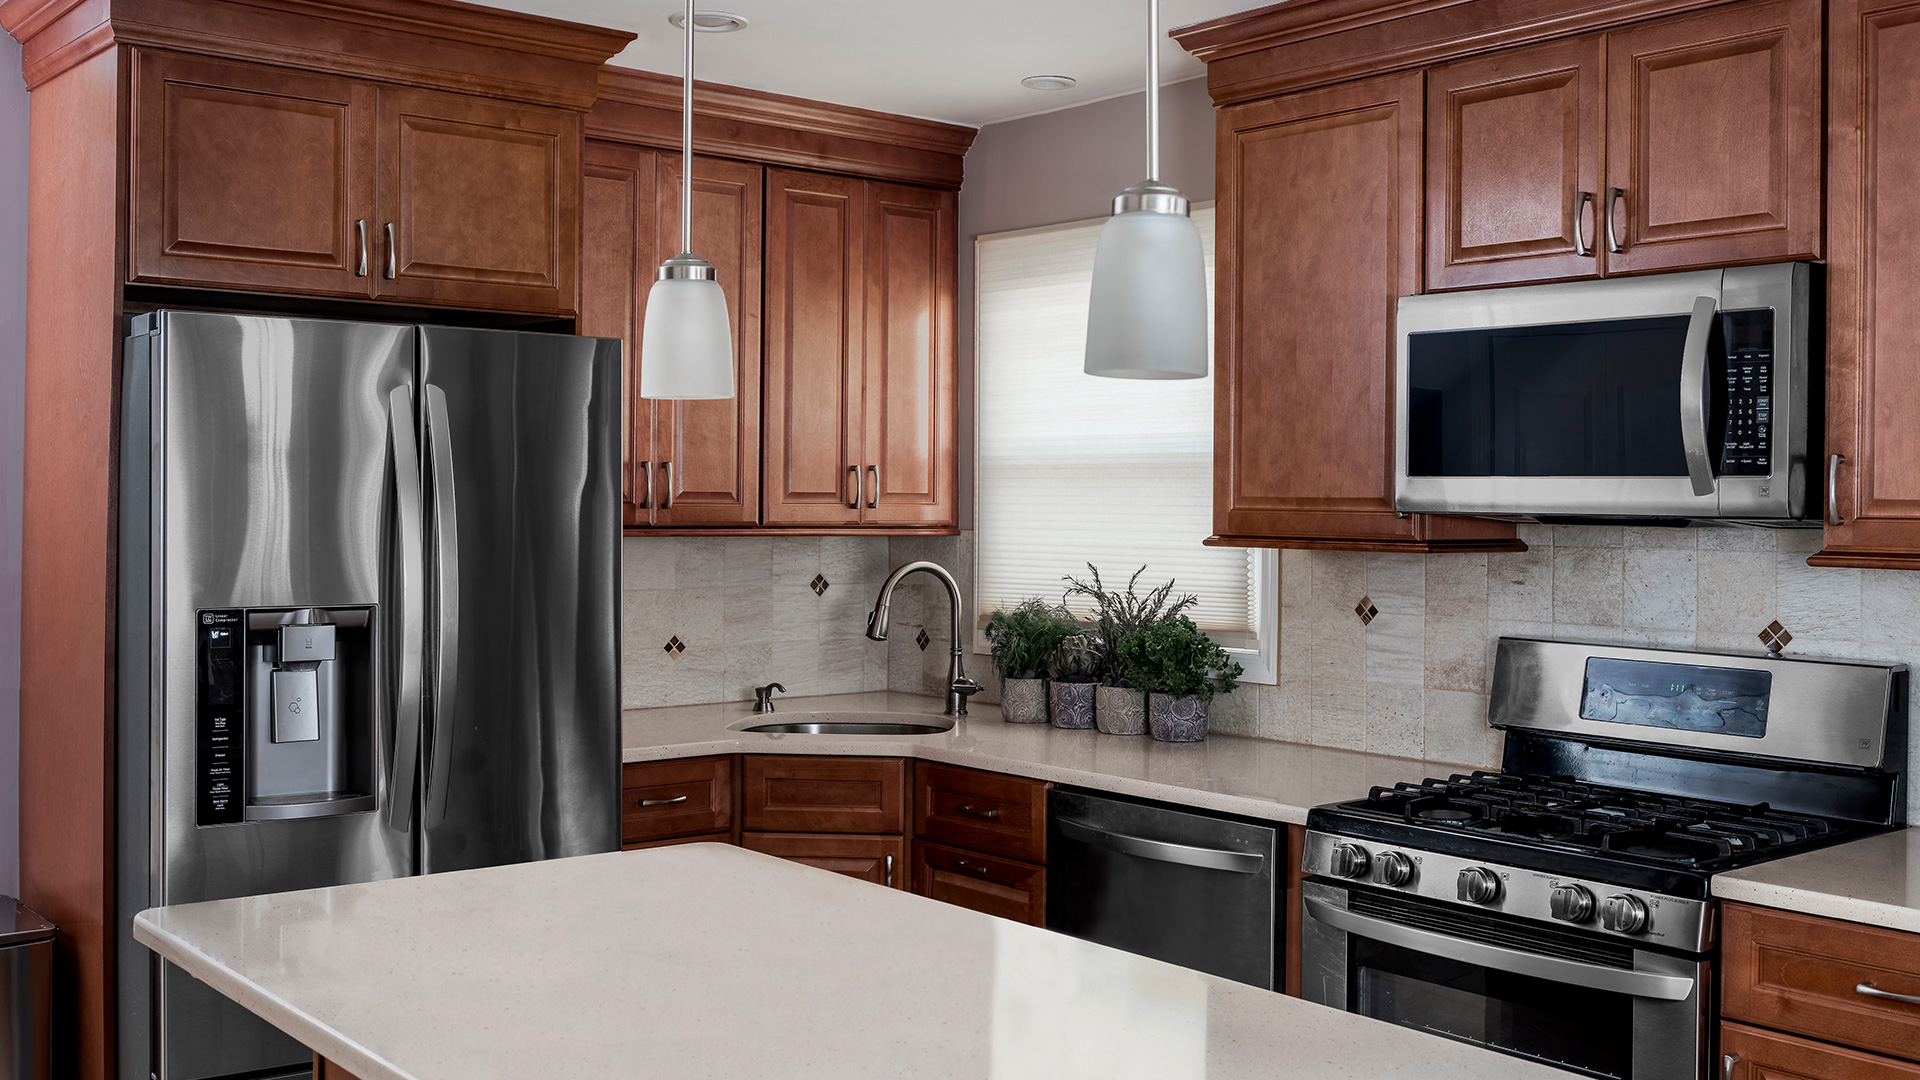 Hallmark pecan cabinets will help design a kitchen that provides a warm, natural connection without making the space dark.